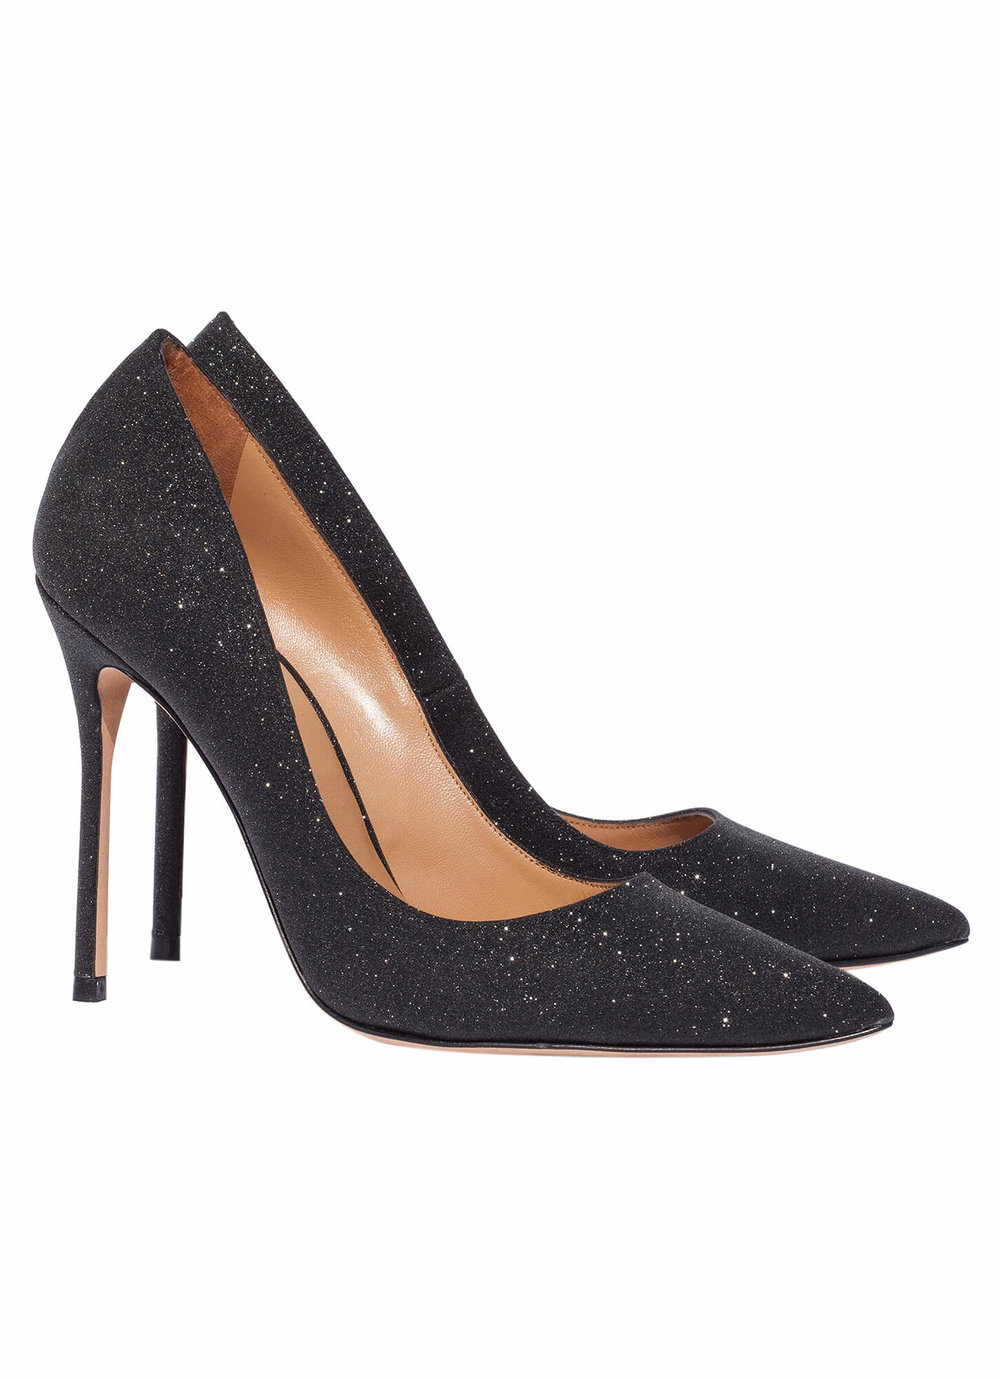 black-evening-heeled-pumps-pura-lopez-kameron.jpg